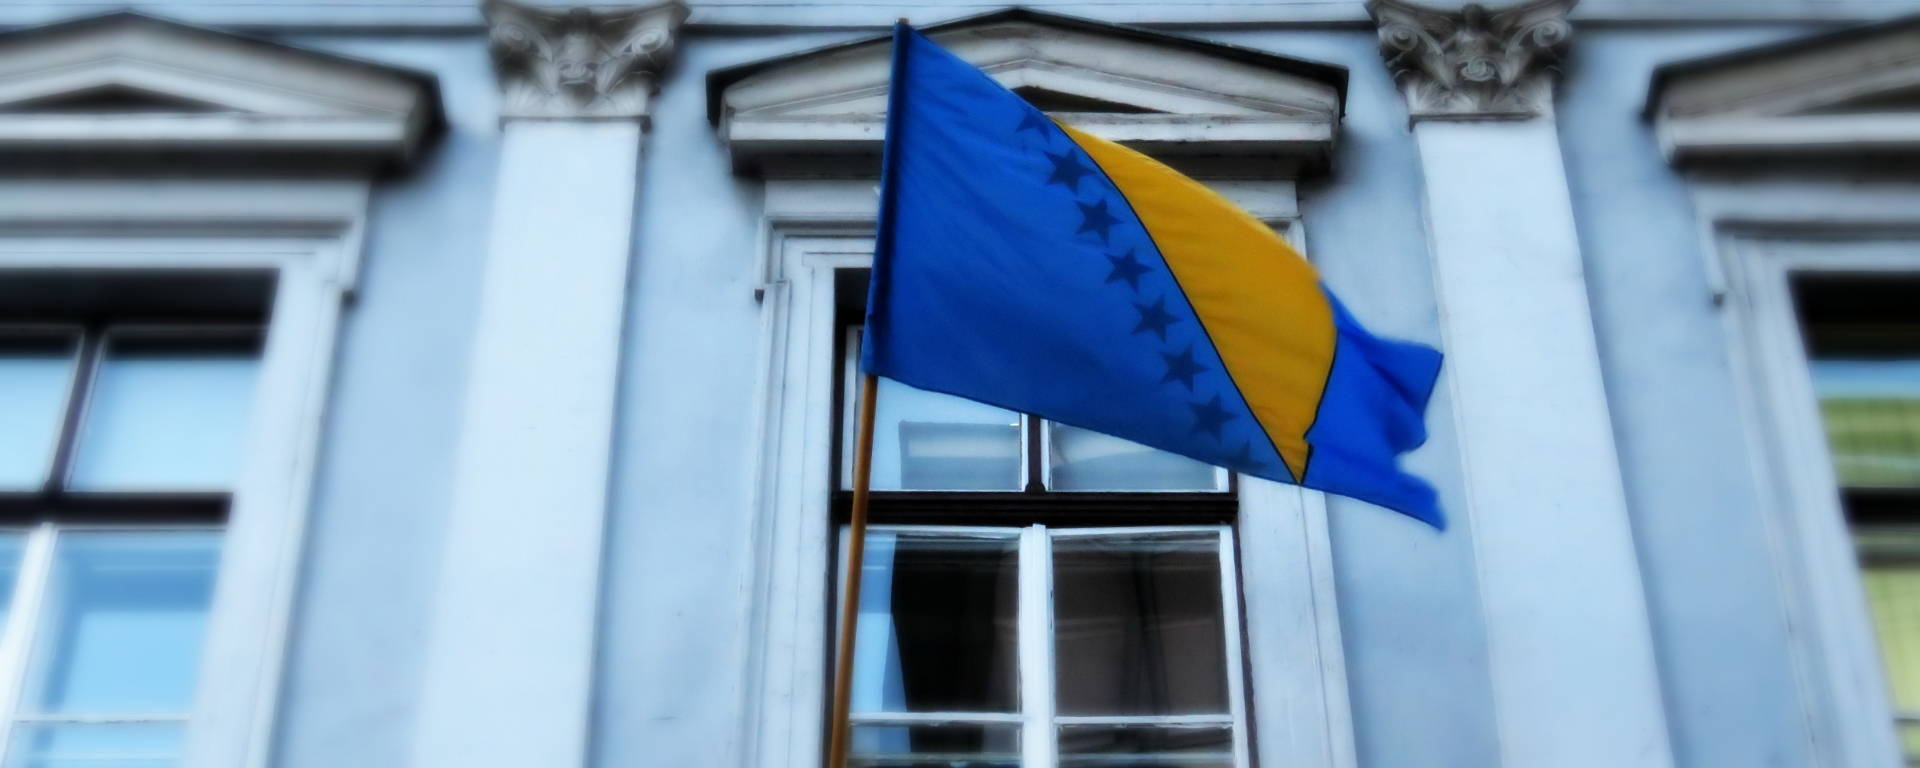 Bosnia and Herzegovina Flag - Sarajevo BiH - by Anika Mikkelson - Miss Maps - www.MissMaps.com